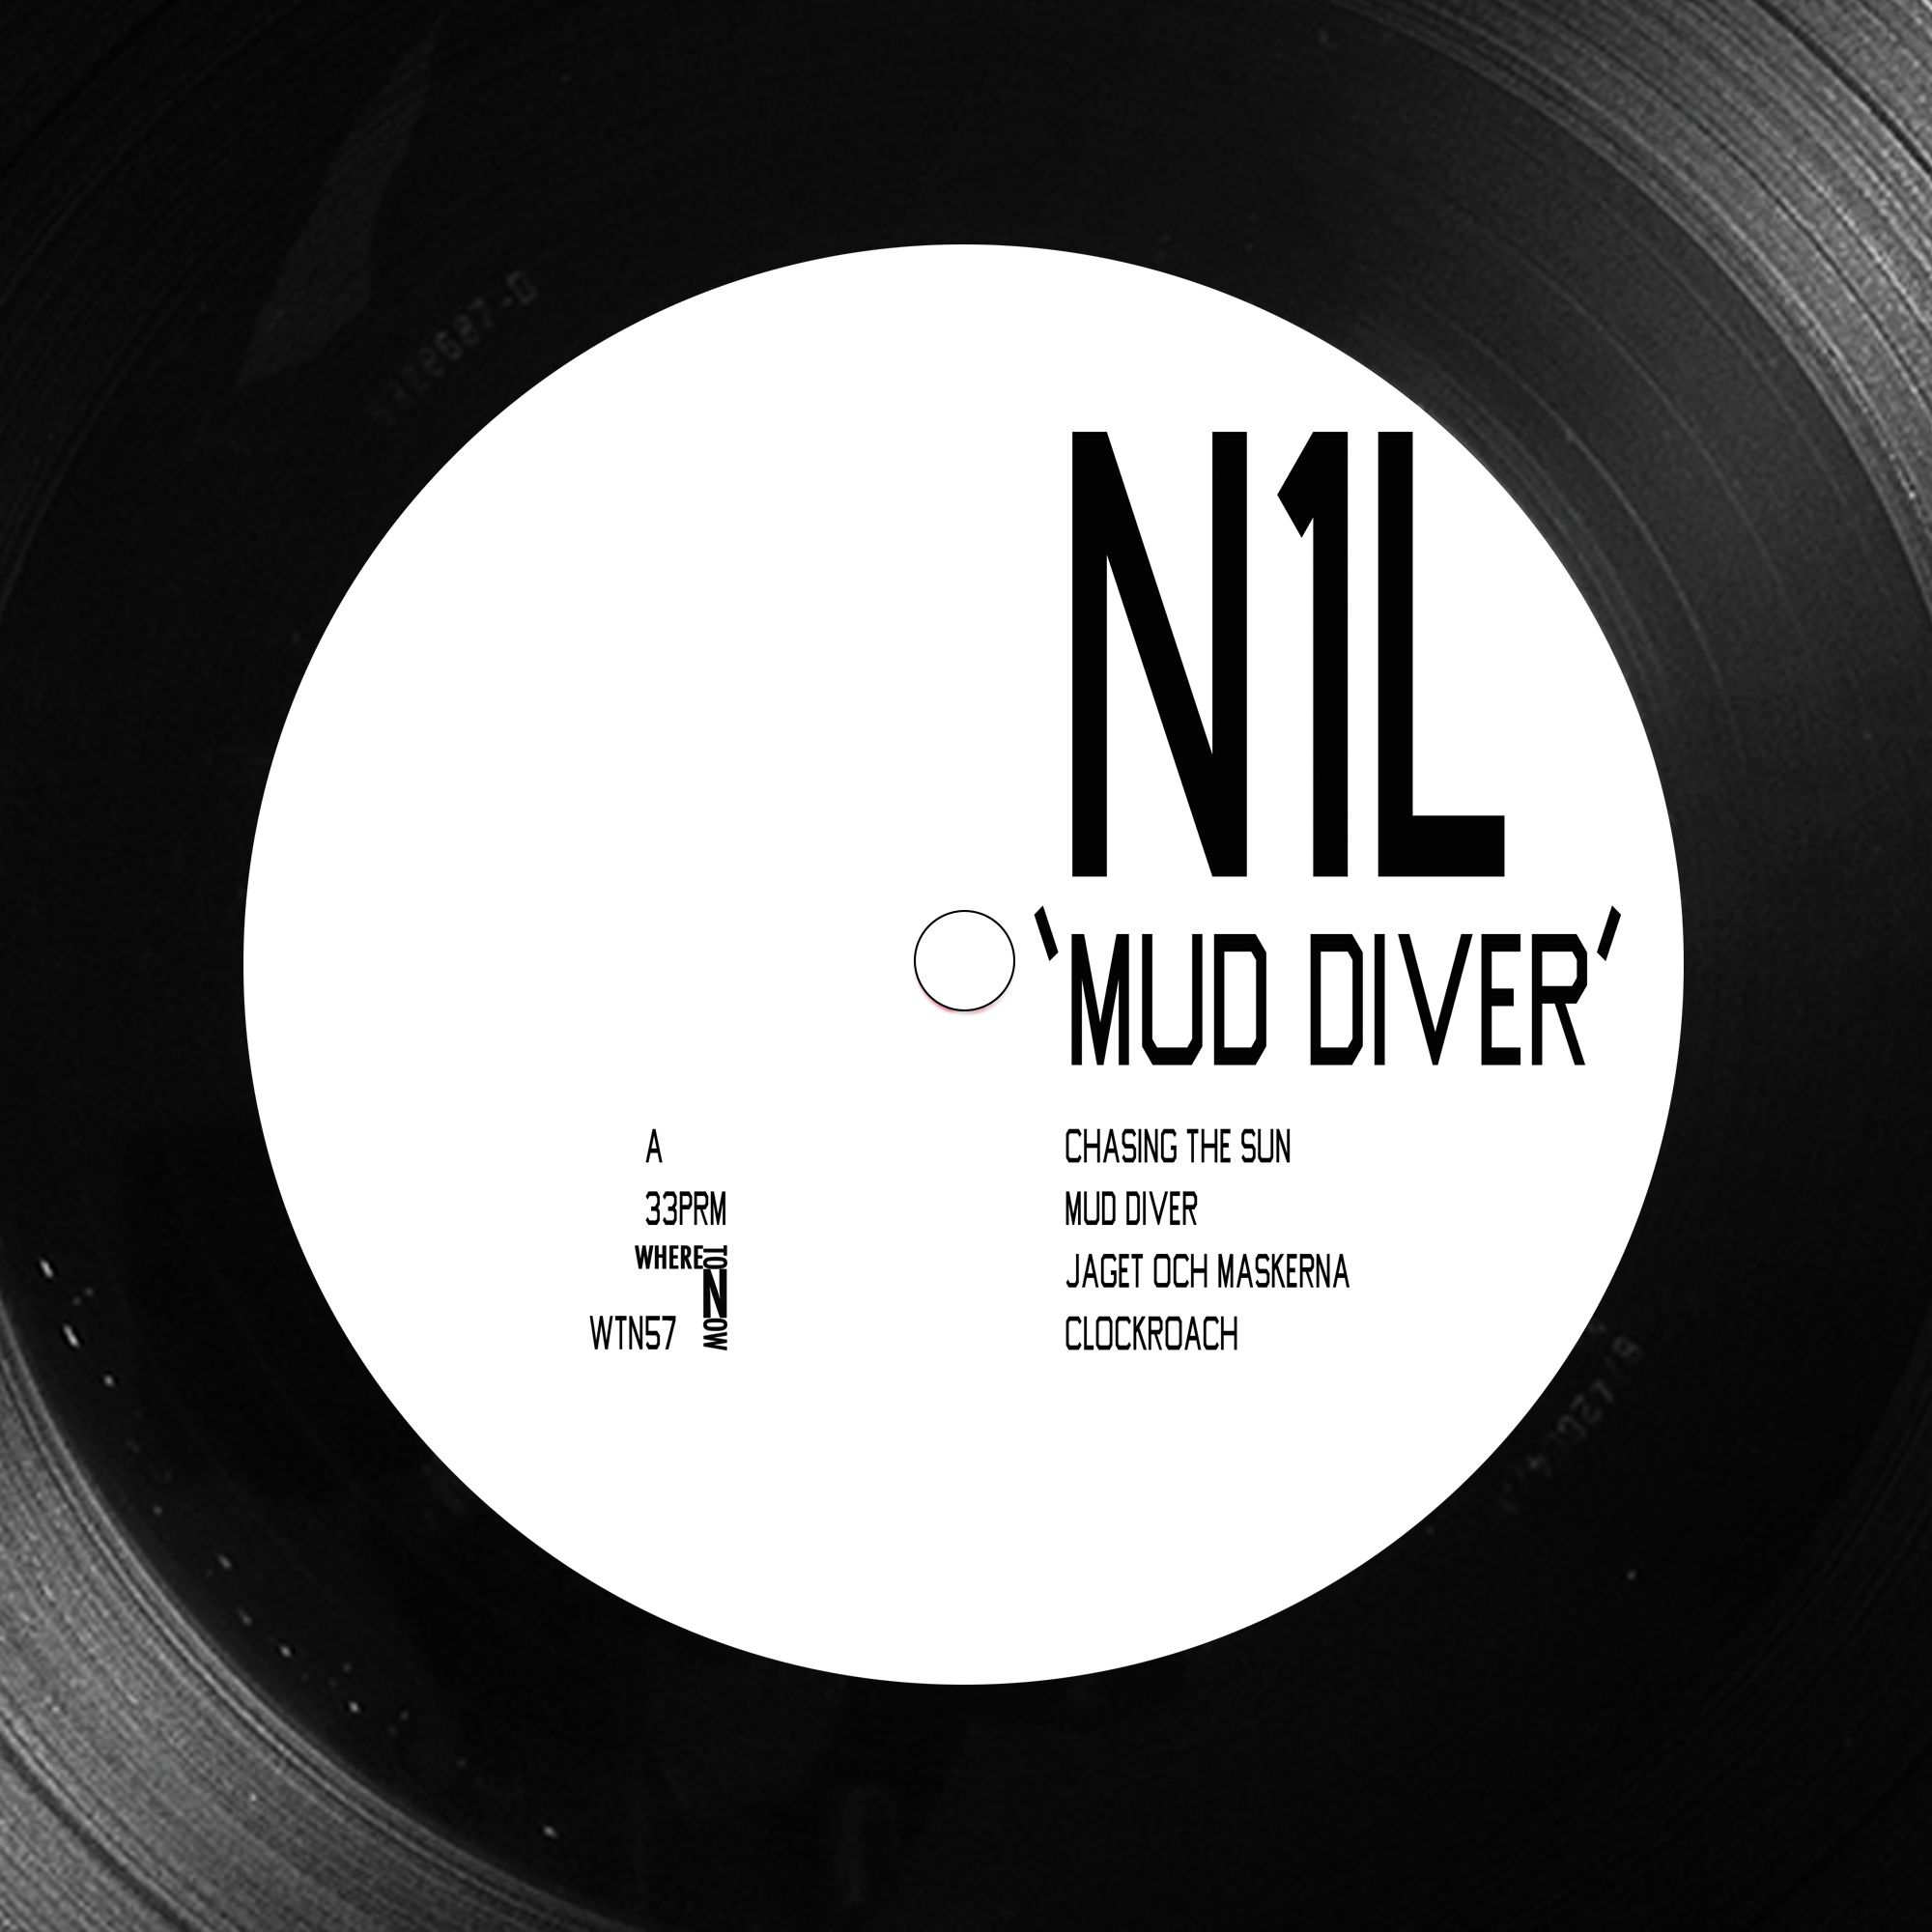 N1L - Mud Diver  7th April 2017  Where To Now?